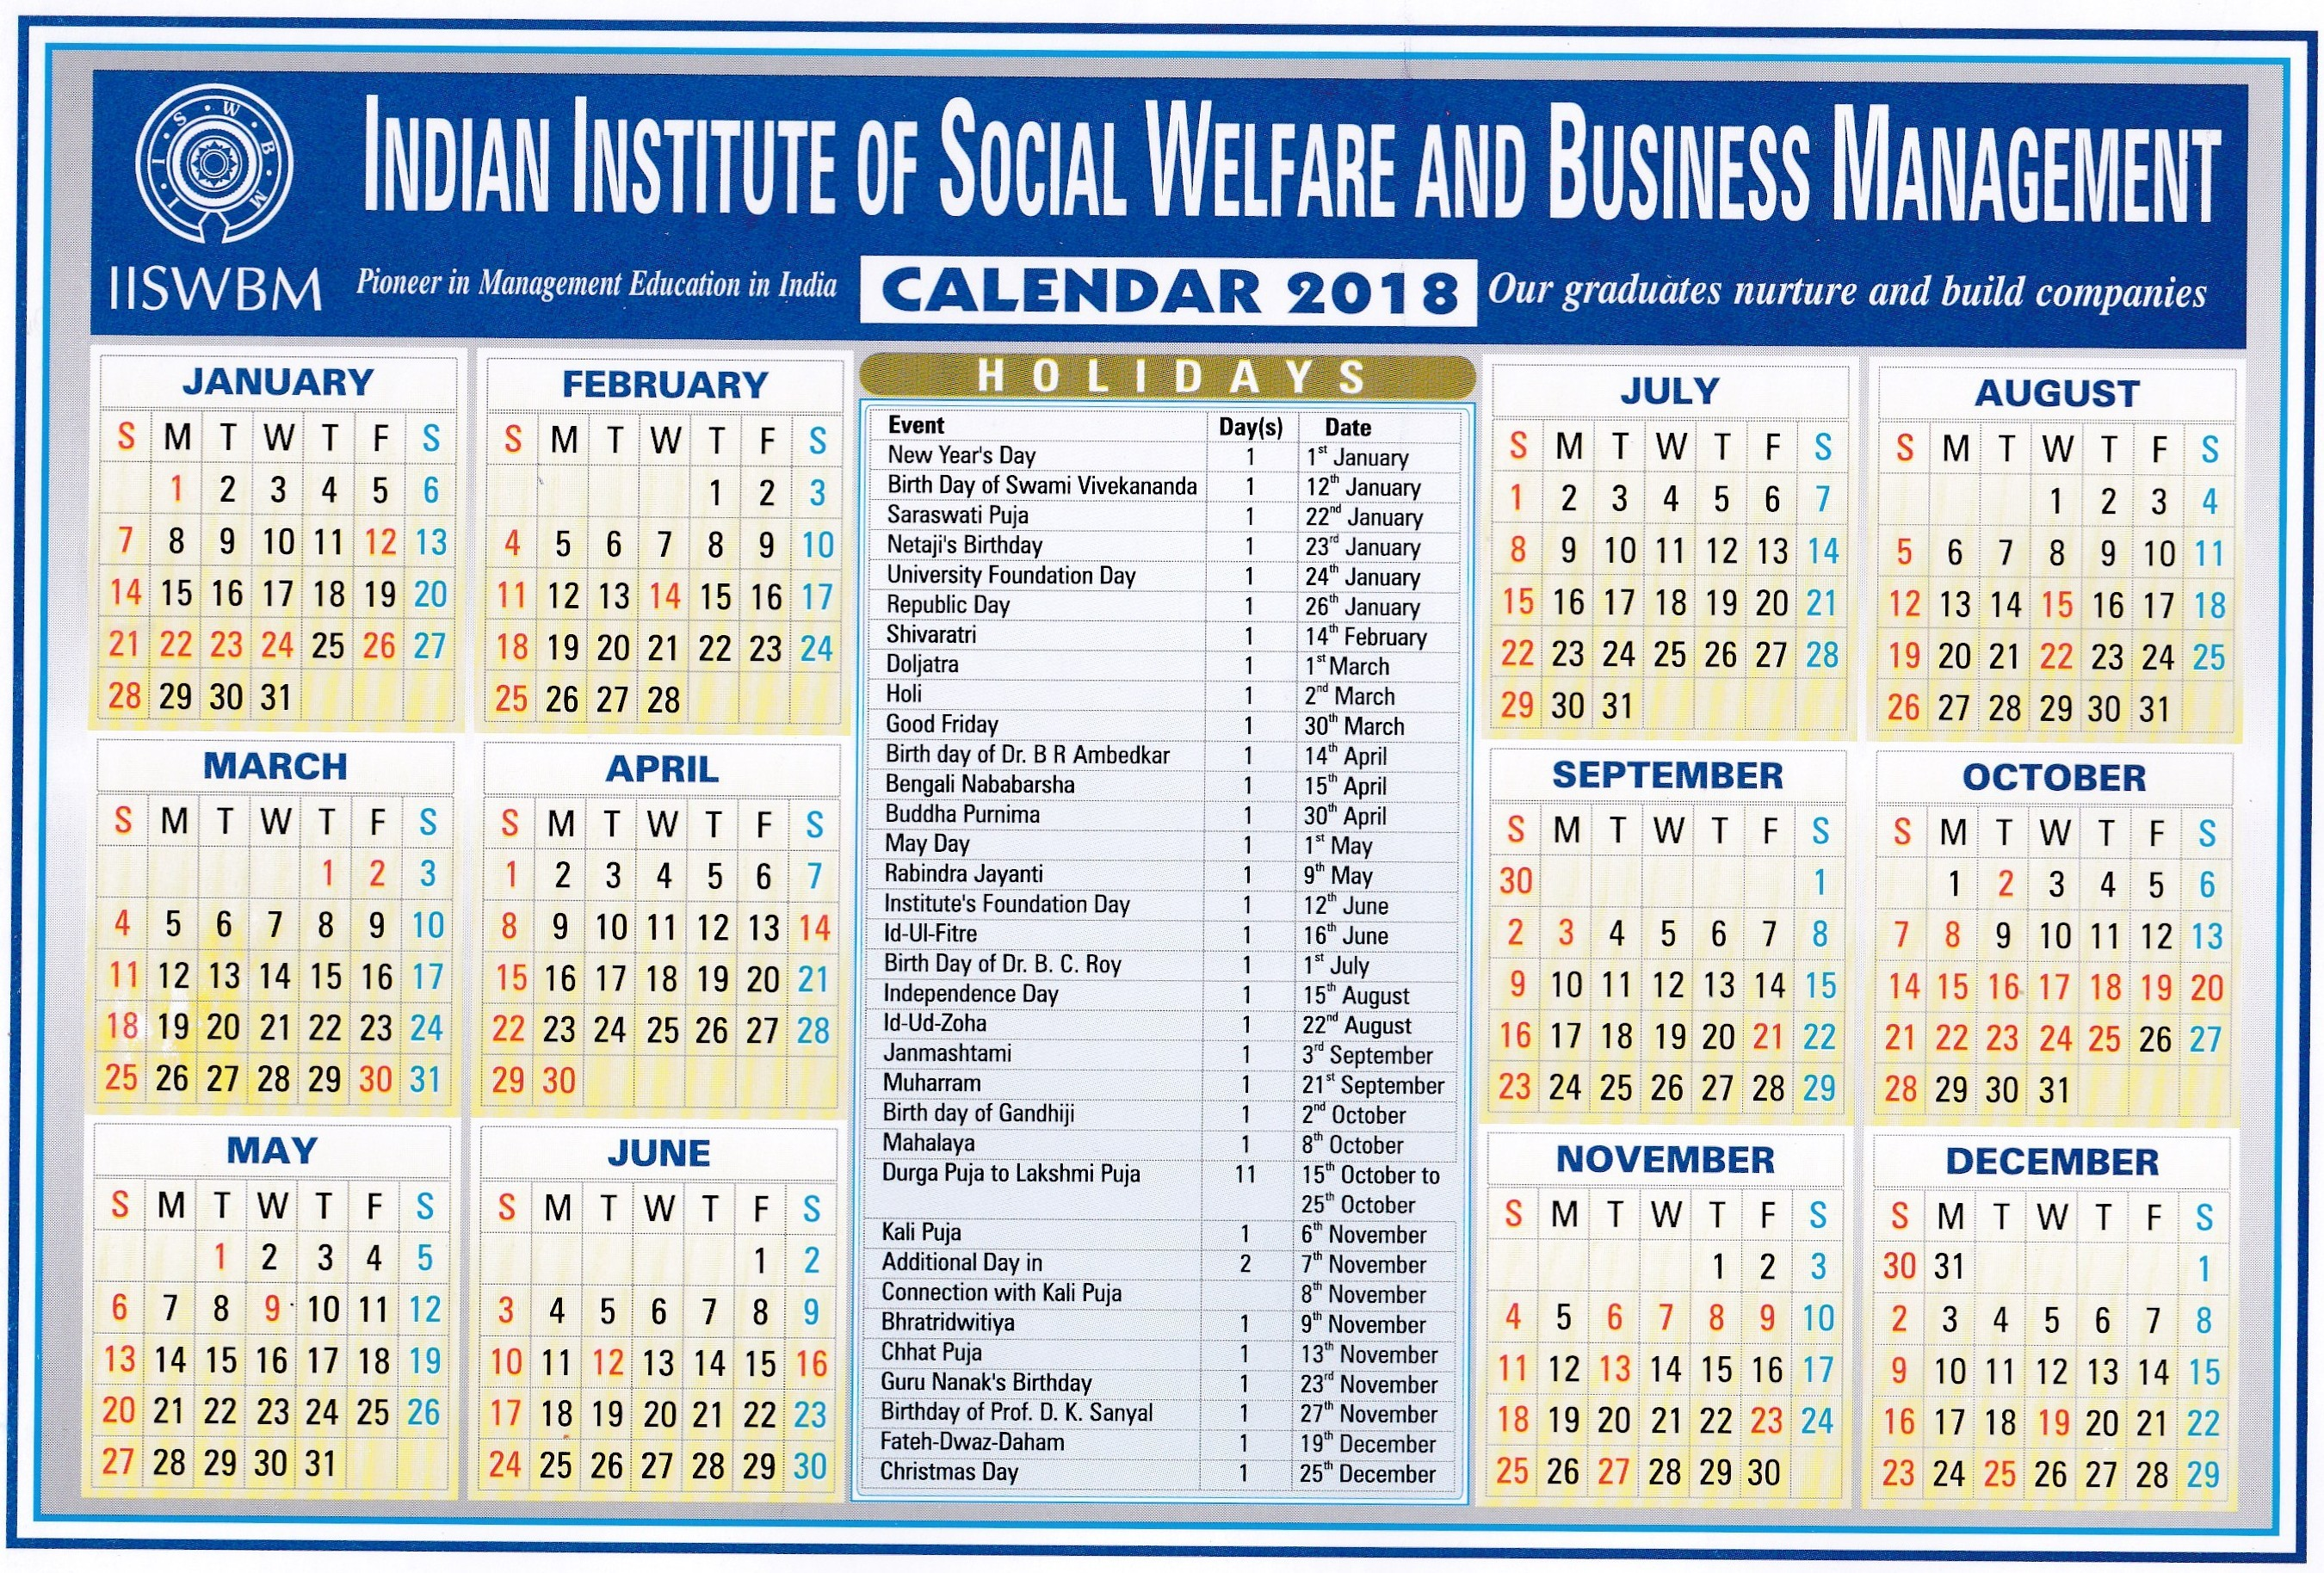 iiswbm 2015 2016 2017 calendar 4 three year printable pdf calendars telugu calendar 2019 january india august 2018 festival hindu calendar 2019 india